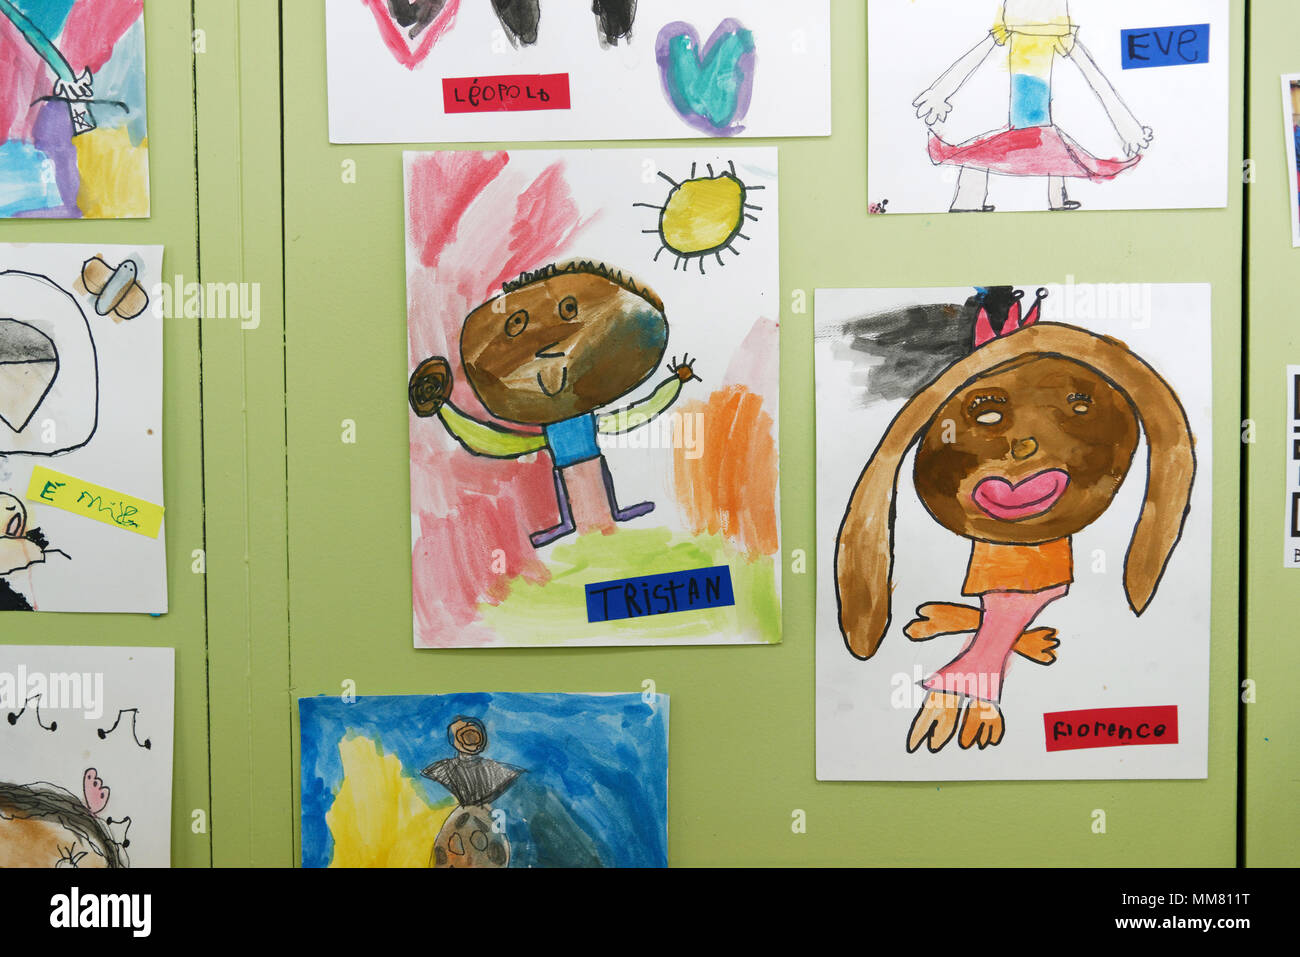 Children's art works on the wall in their school. - Stock Image